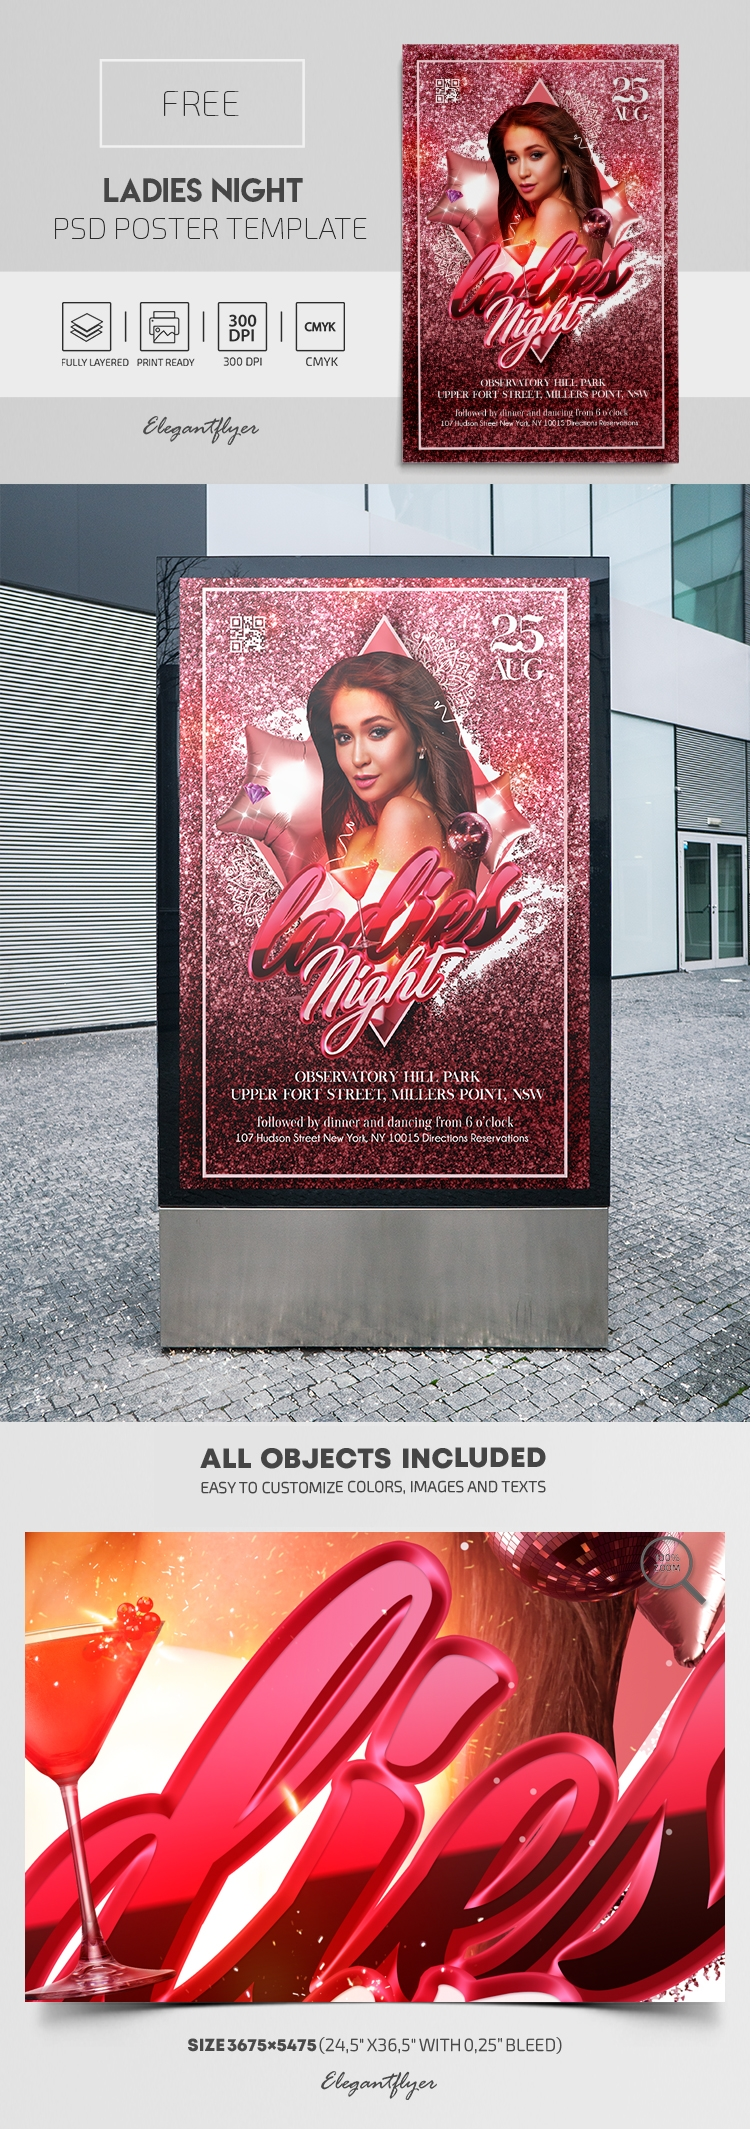 Ladies Night – Free PSD Poster Template